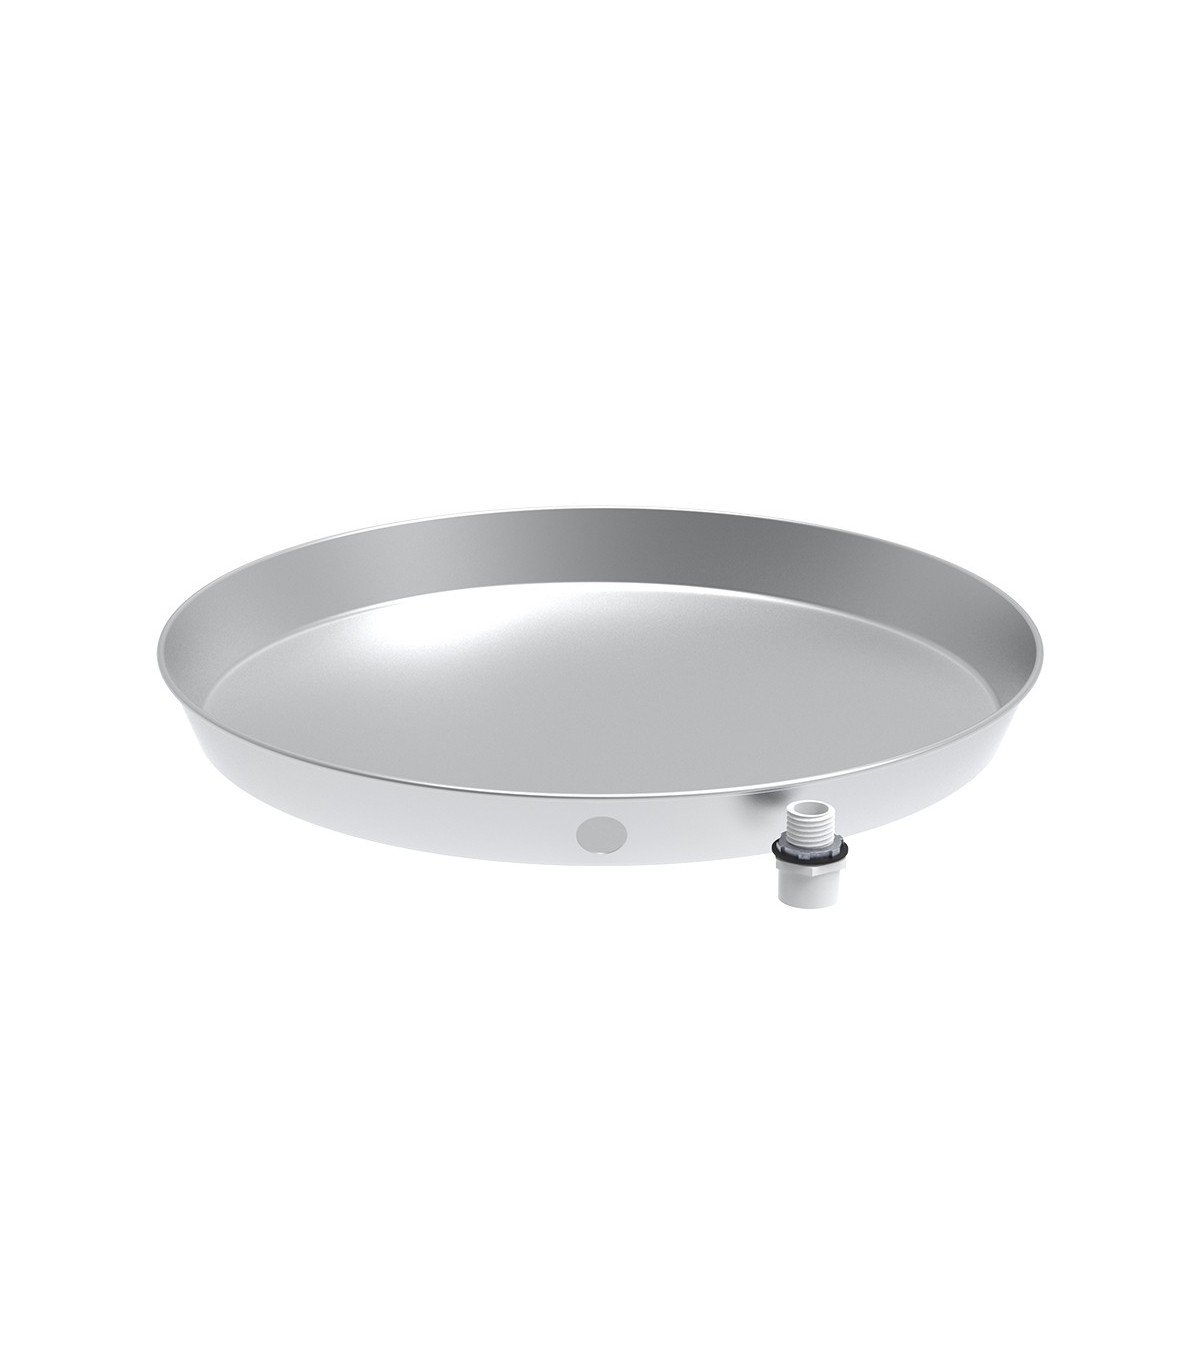 24 In Aluminum Water Heater Pan With Drain